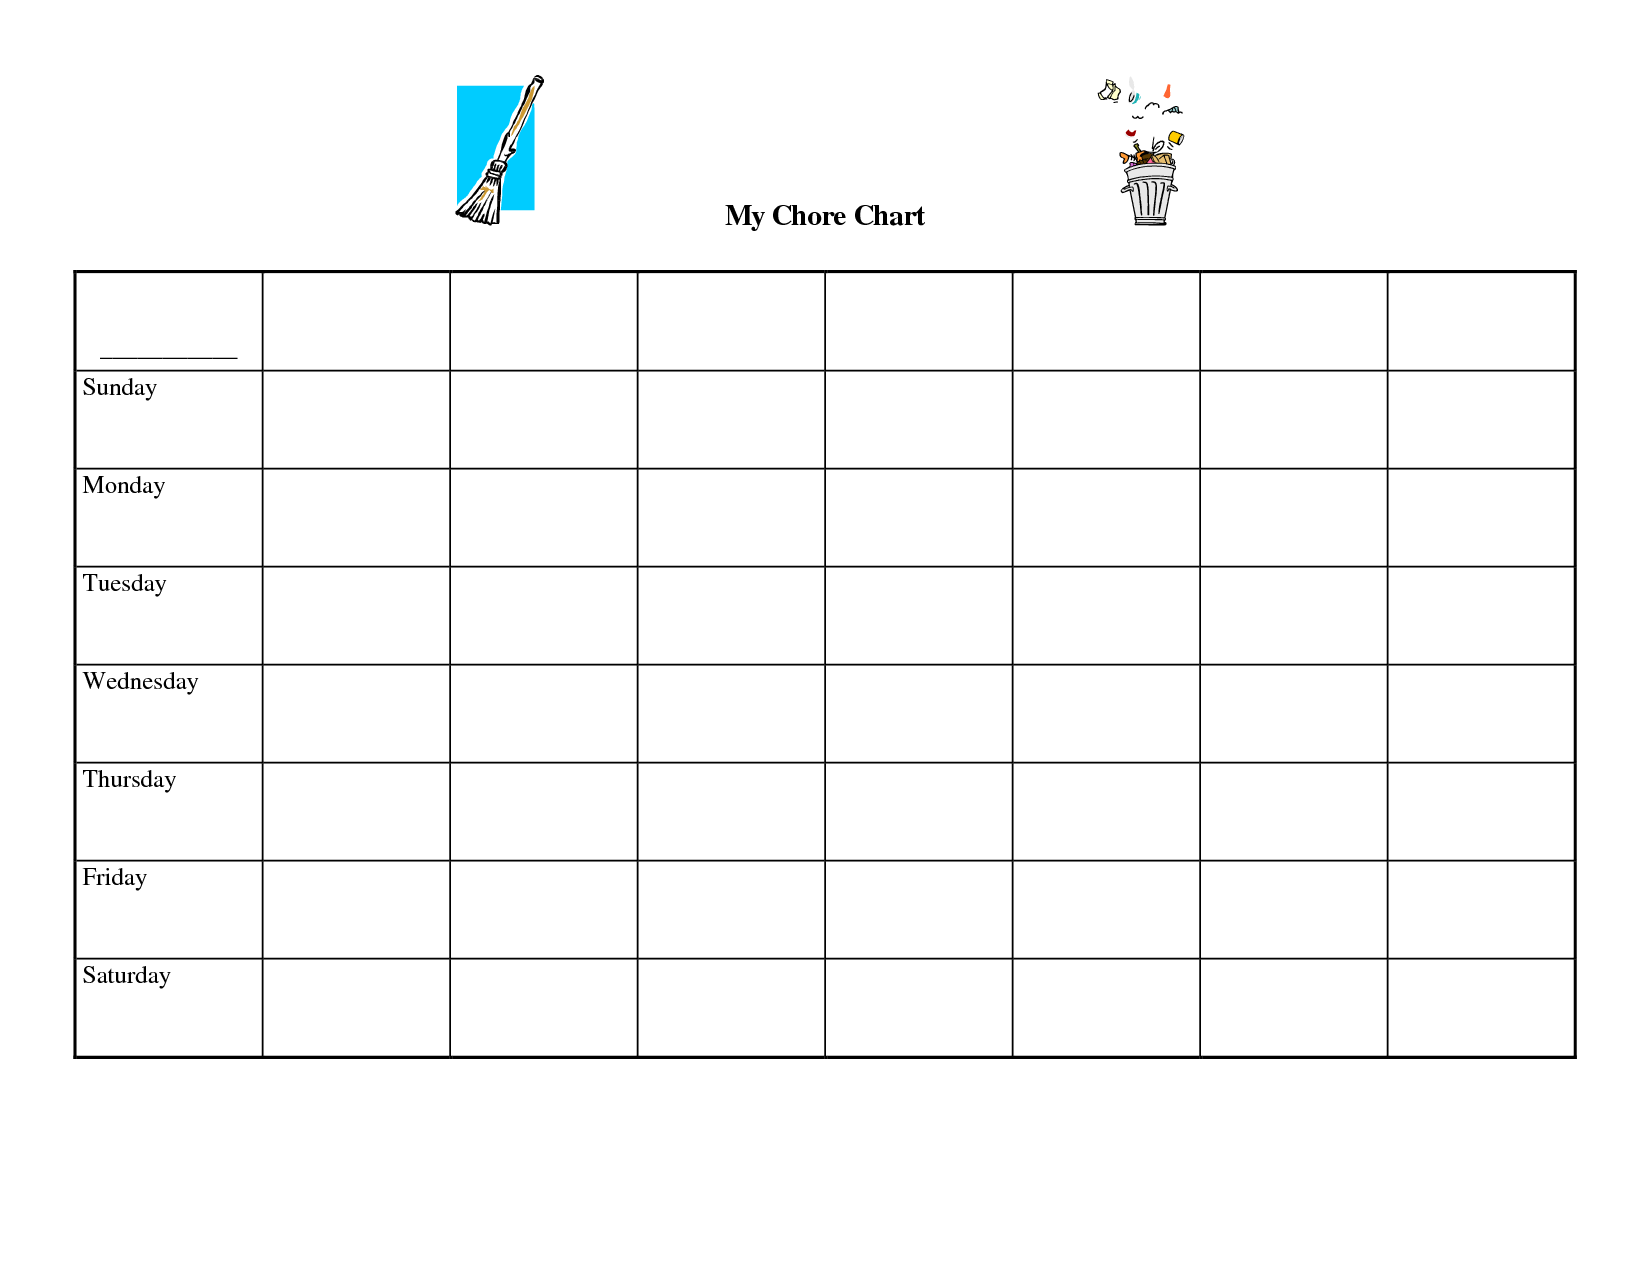 Free Printable Blank Spreadsheets | Chore Charts Free Chore Charts Printable  Chore Charts Free Printable .  Free Printable Spreadsheets Blank